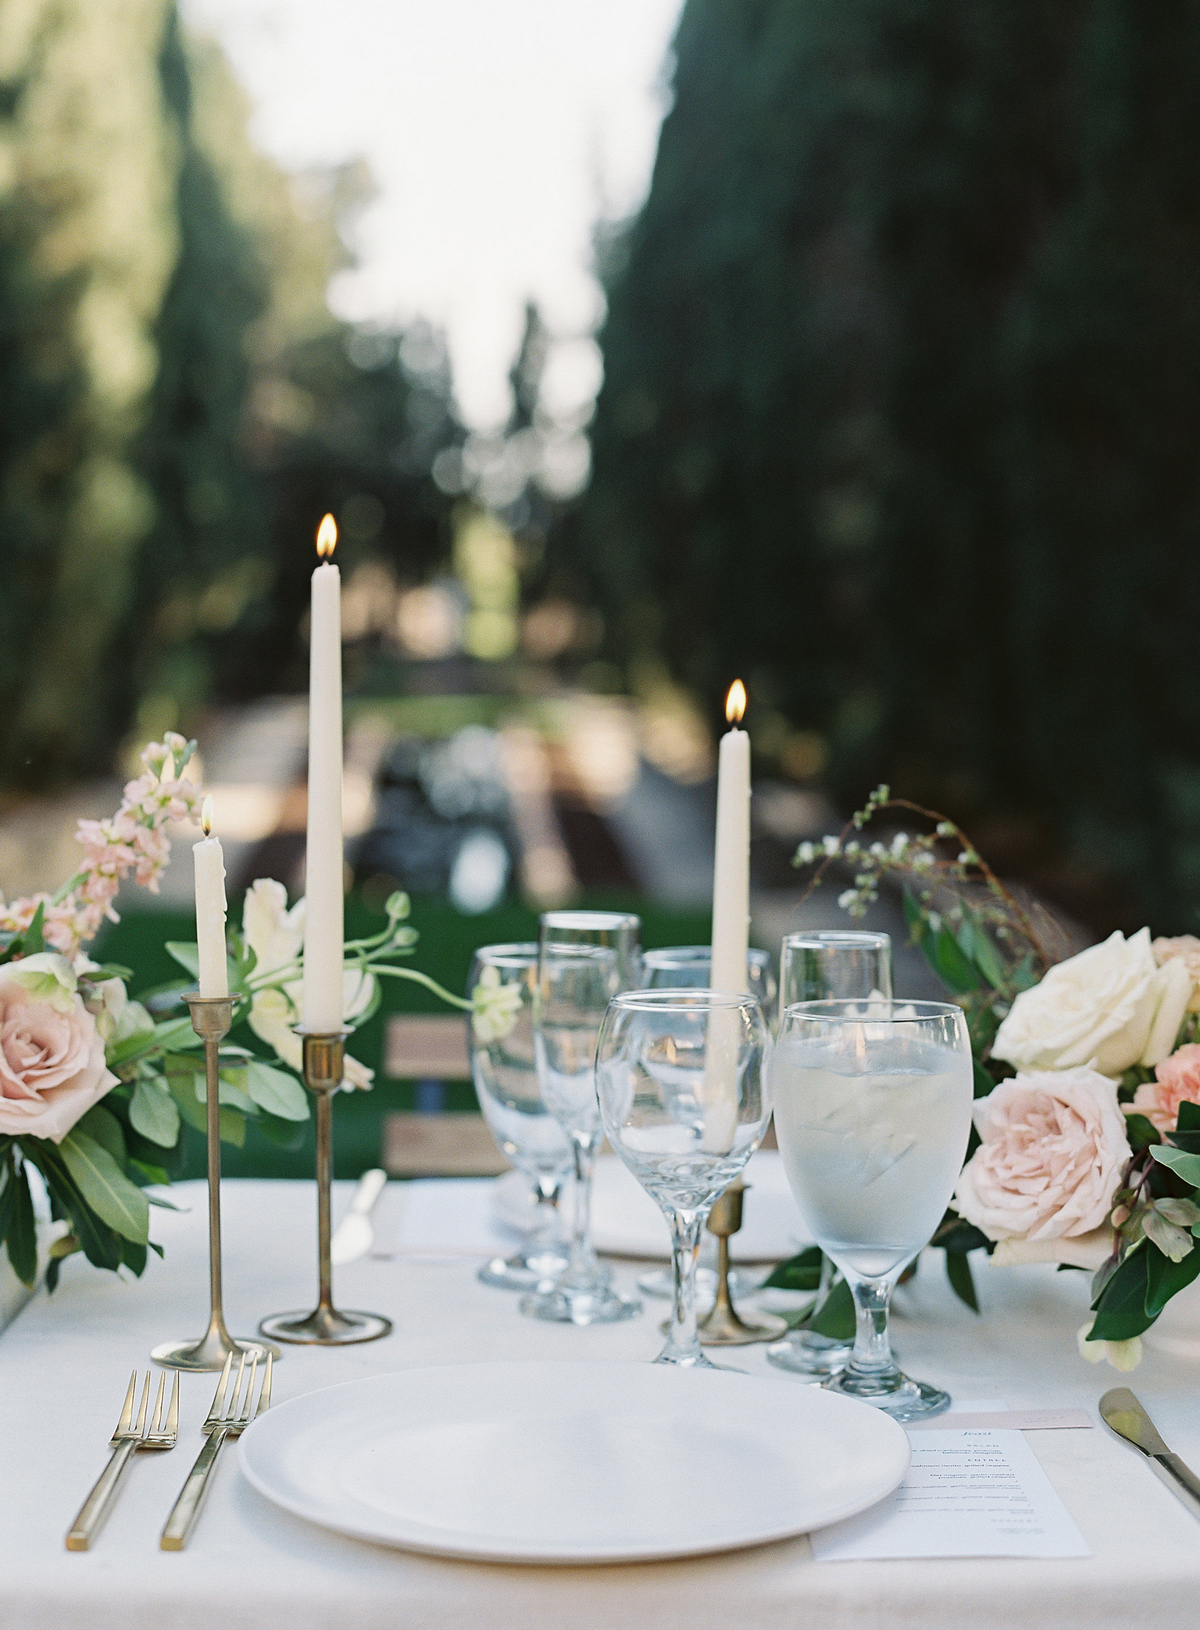 emme daji wedding place setting with roses and gold accents